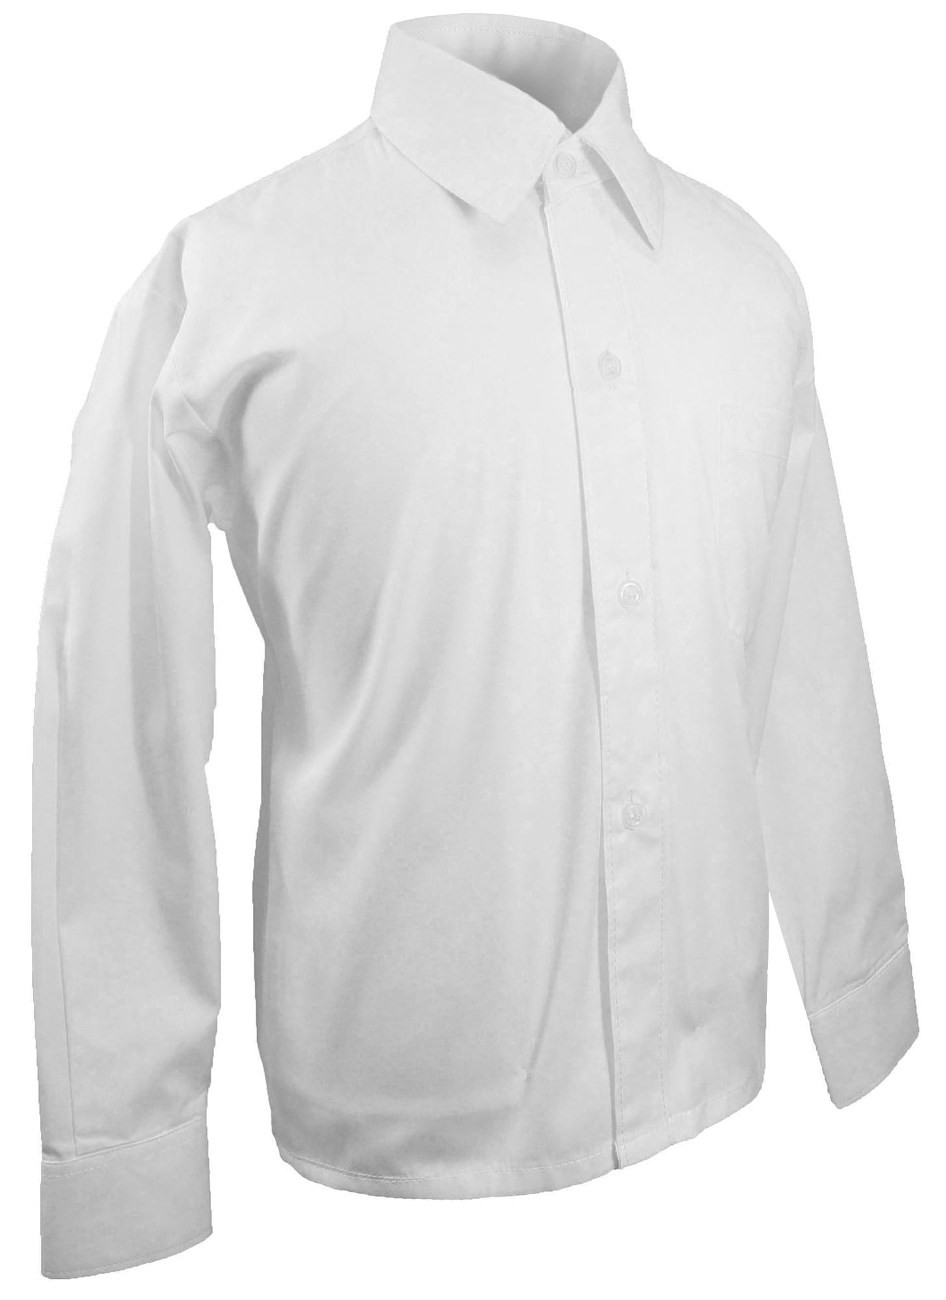 Boys shirt solid white